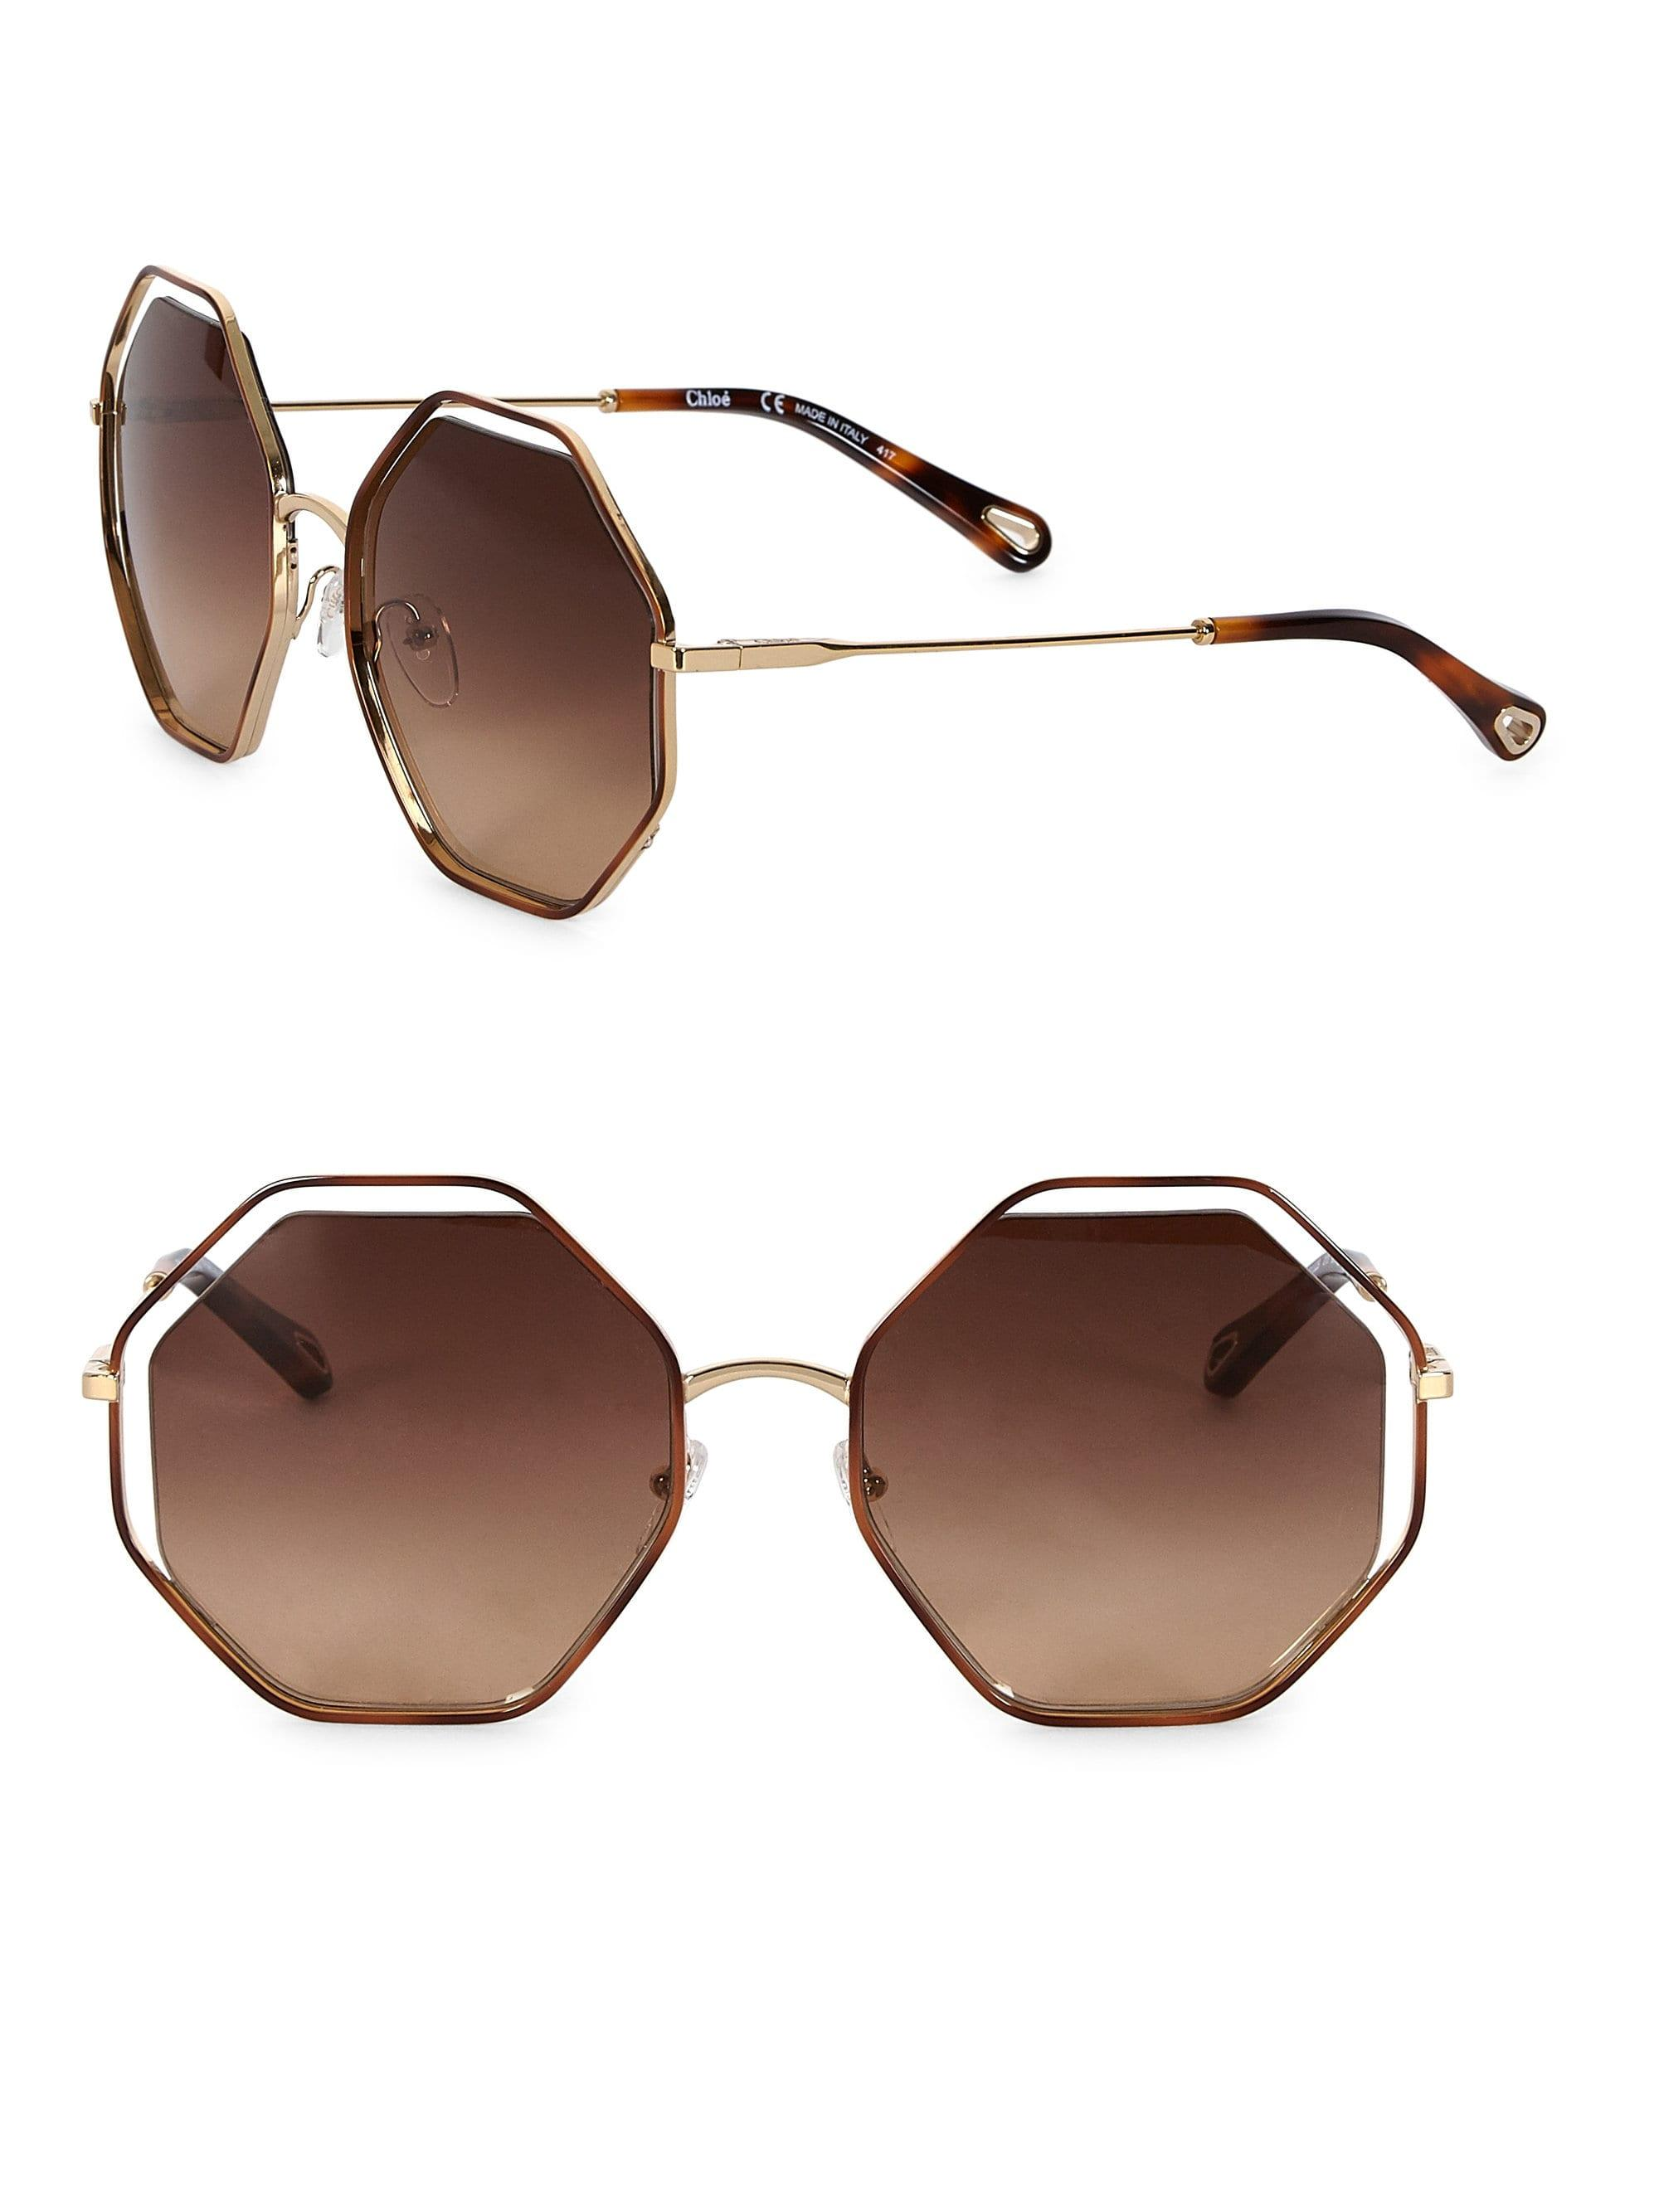 768ad2b088d Chloé Poppy Octagon Sunglasses in Brown - Lyst